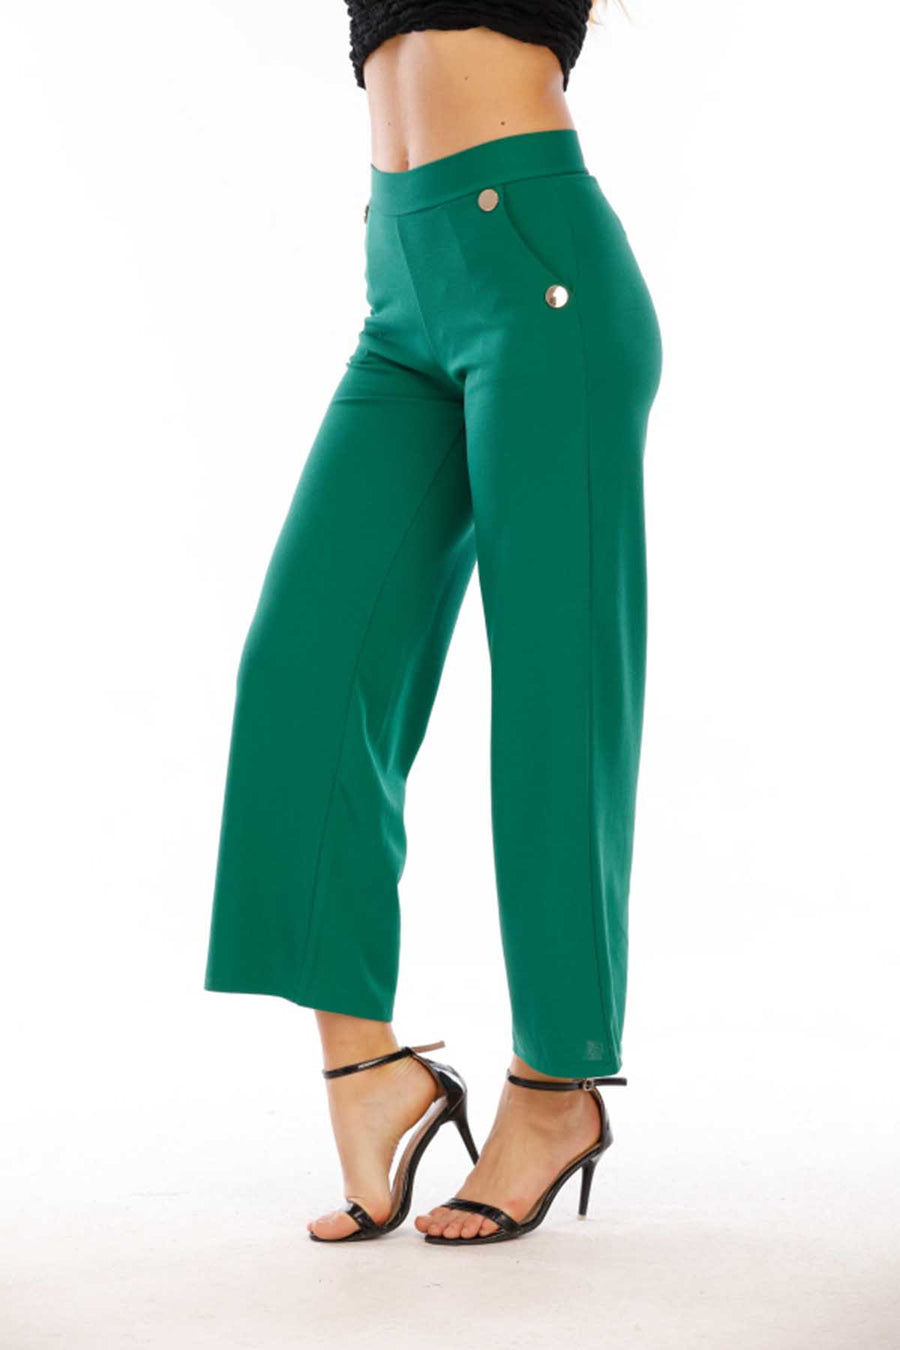 Mantra Pakistan Pants with 4 Gold Buttons | Western Wear